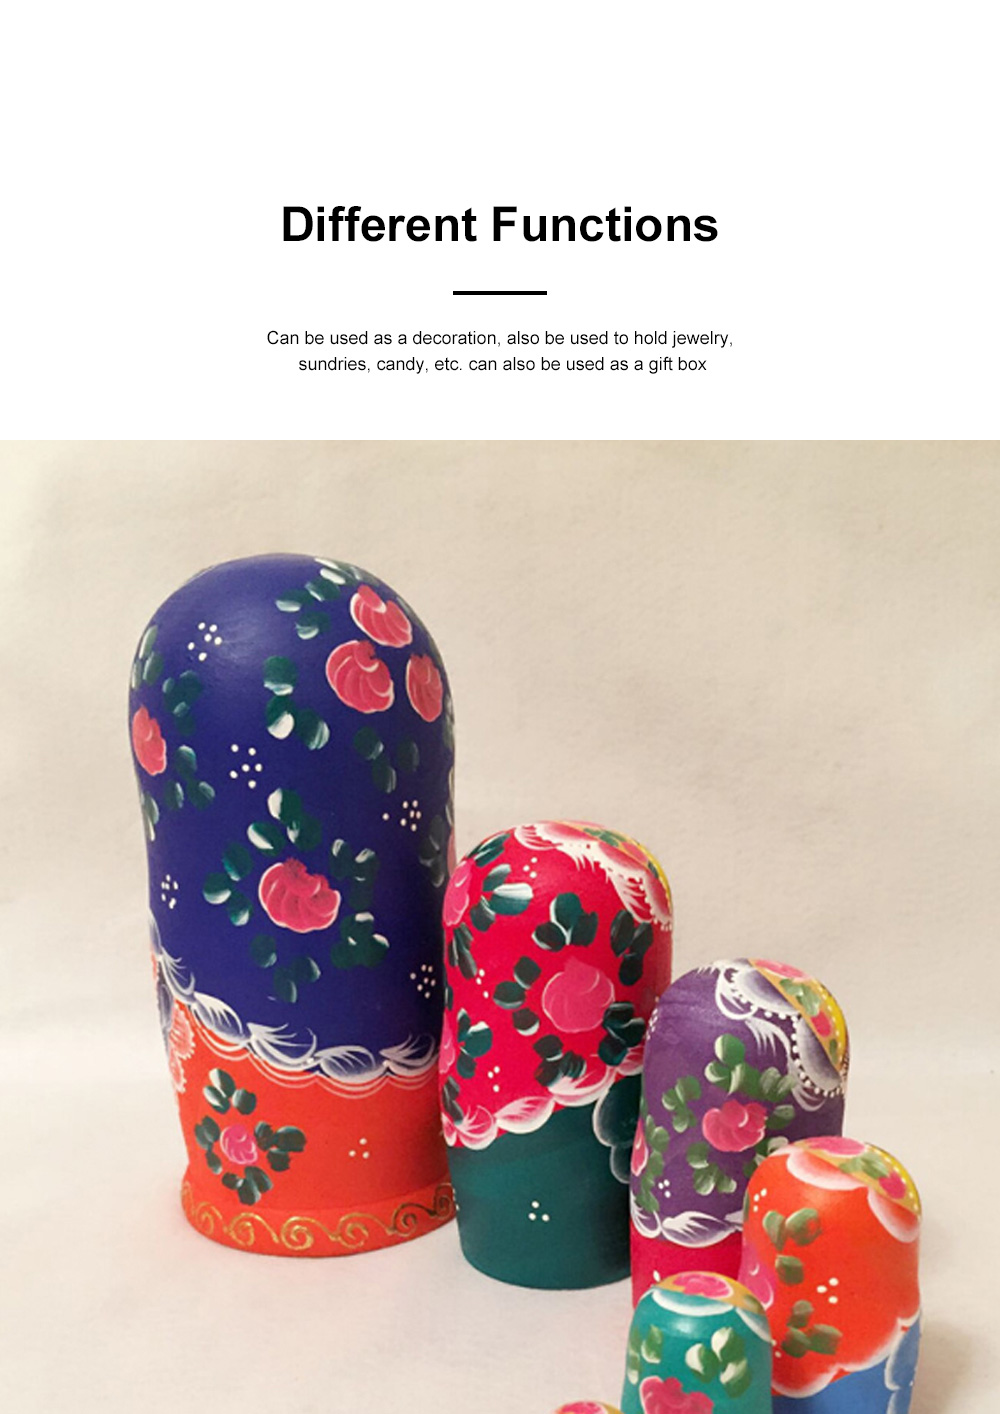 Matryoshka Dolls Nesting Stacking Wooden Russian Toys with Flower Ornament Hand Painted Wood Souvenir Folk Art Crafts 2